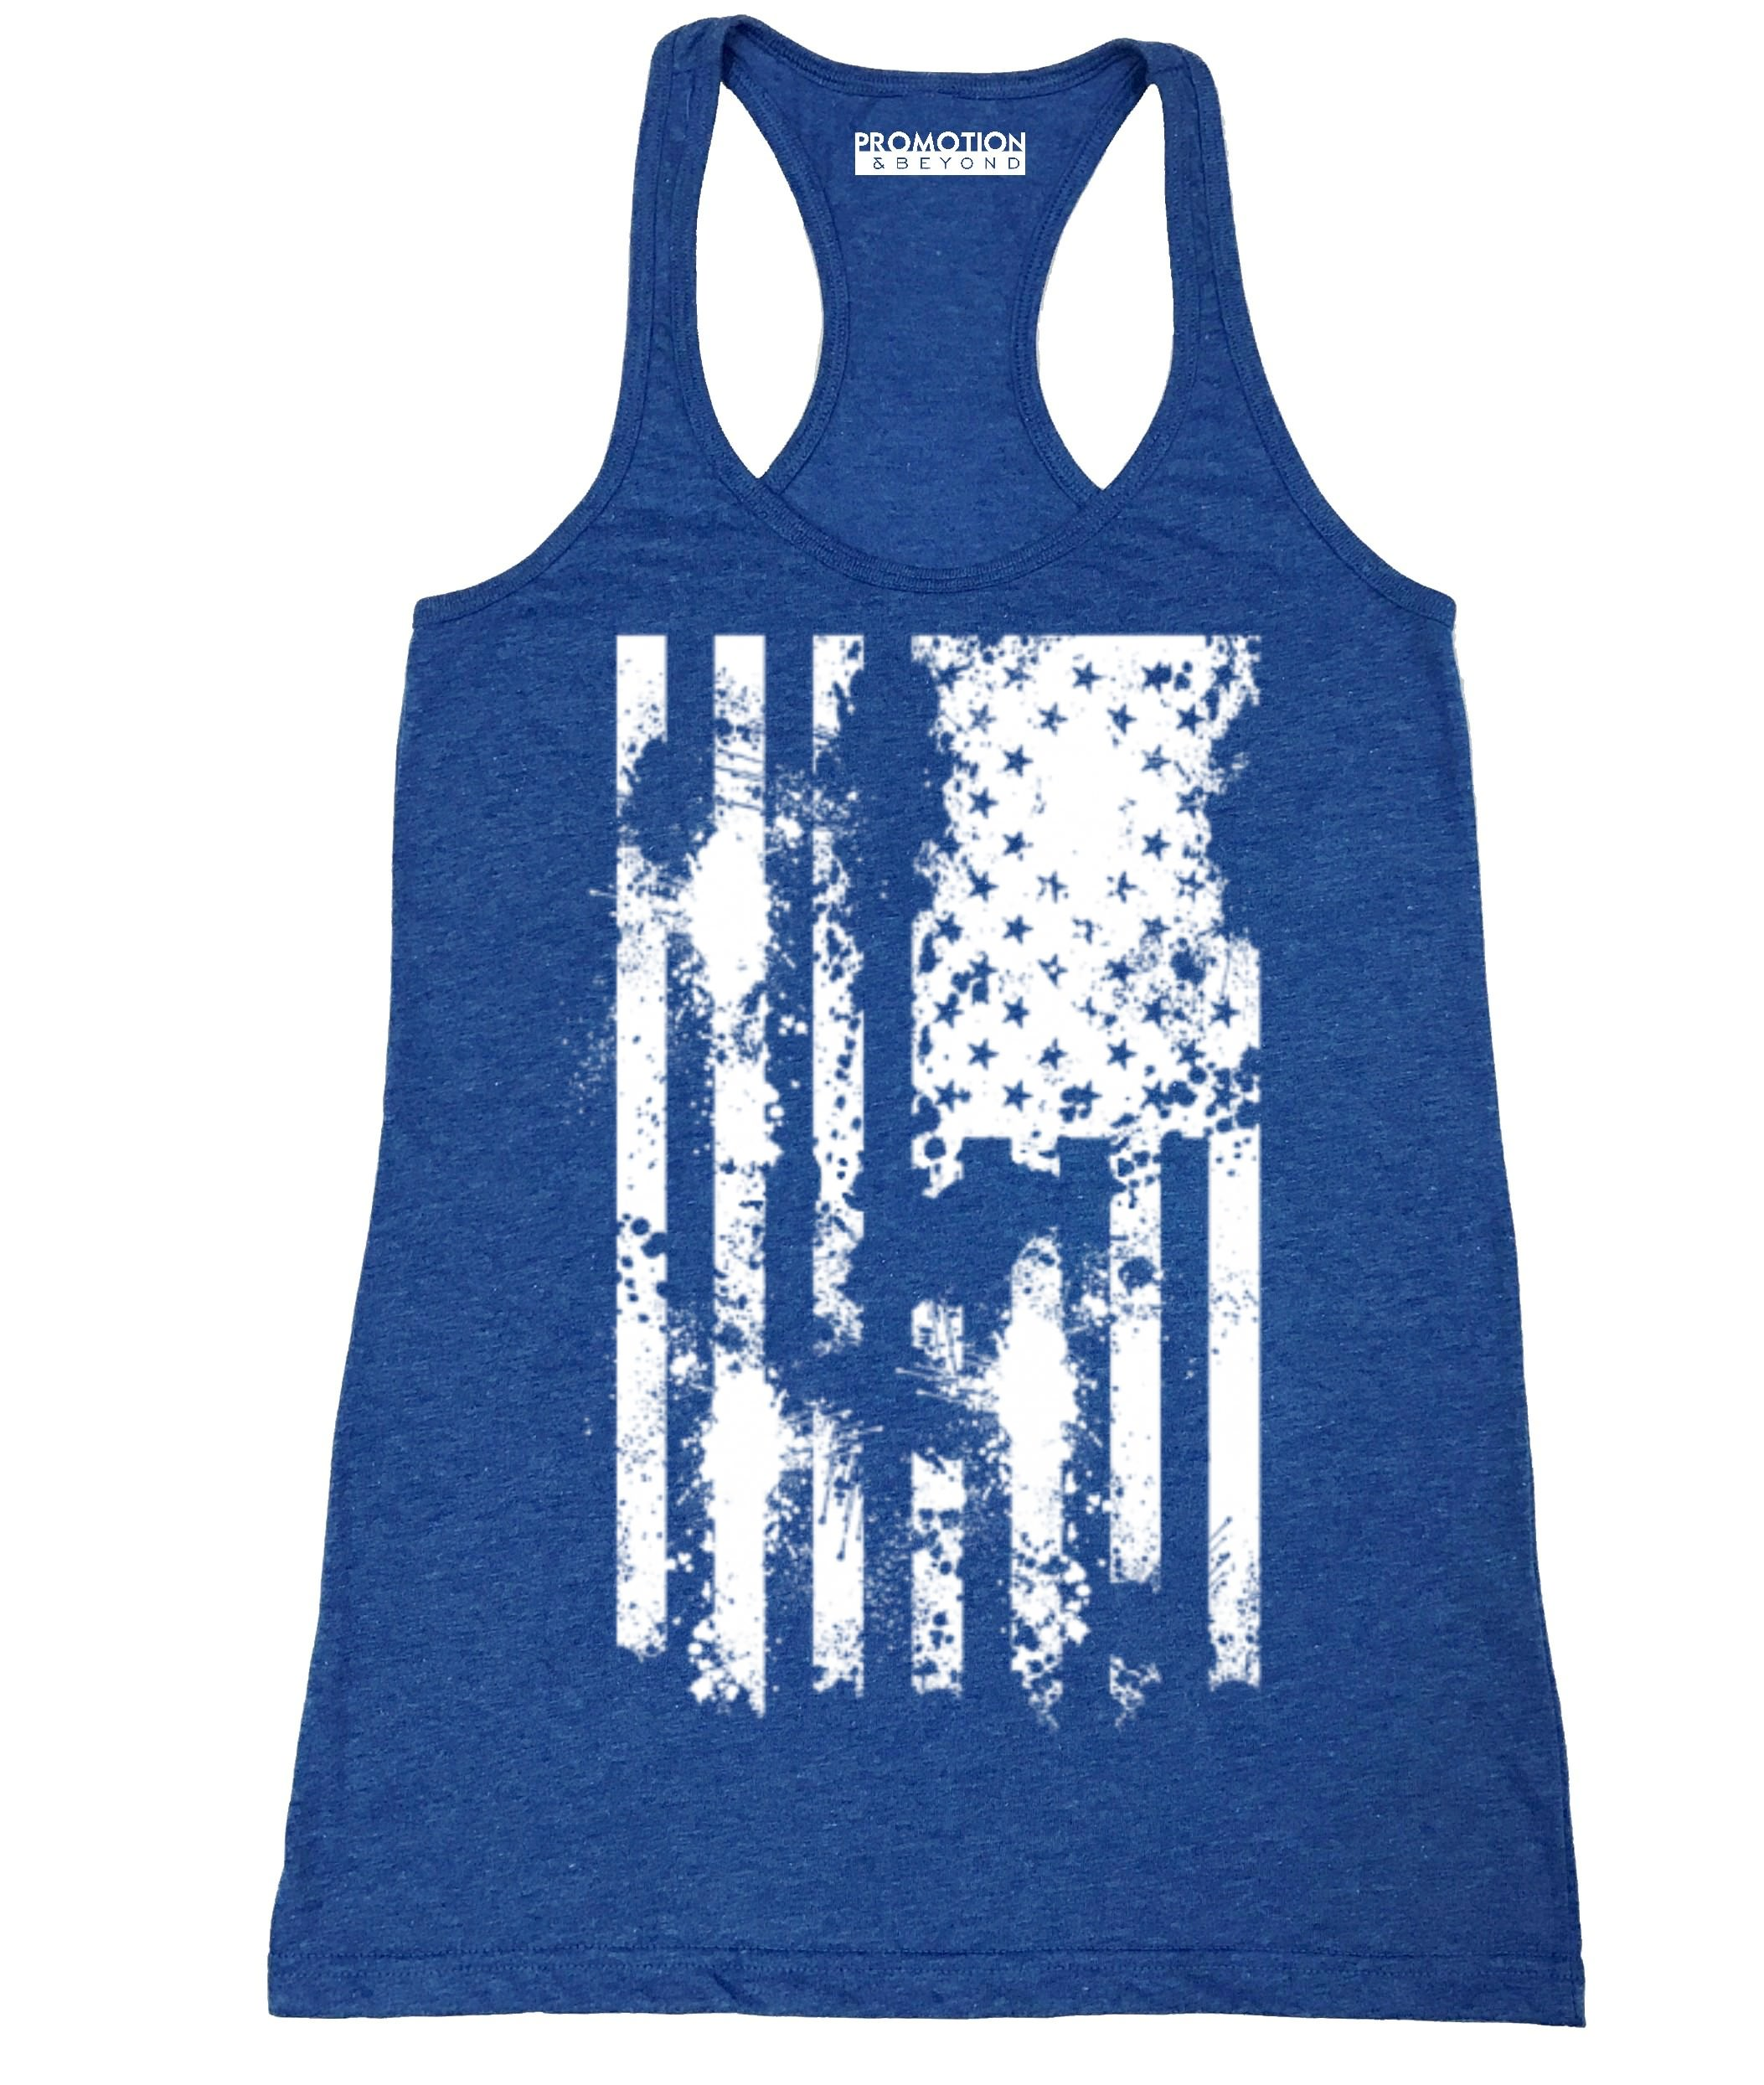 61a054e37a6bd4 Promotion & Beyond - P&B White Distressed USA Flag 4th of July Independence  Day Women's Tank Top, Heather Royal, 2XL - Walmart.com